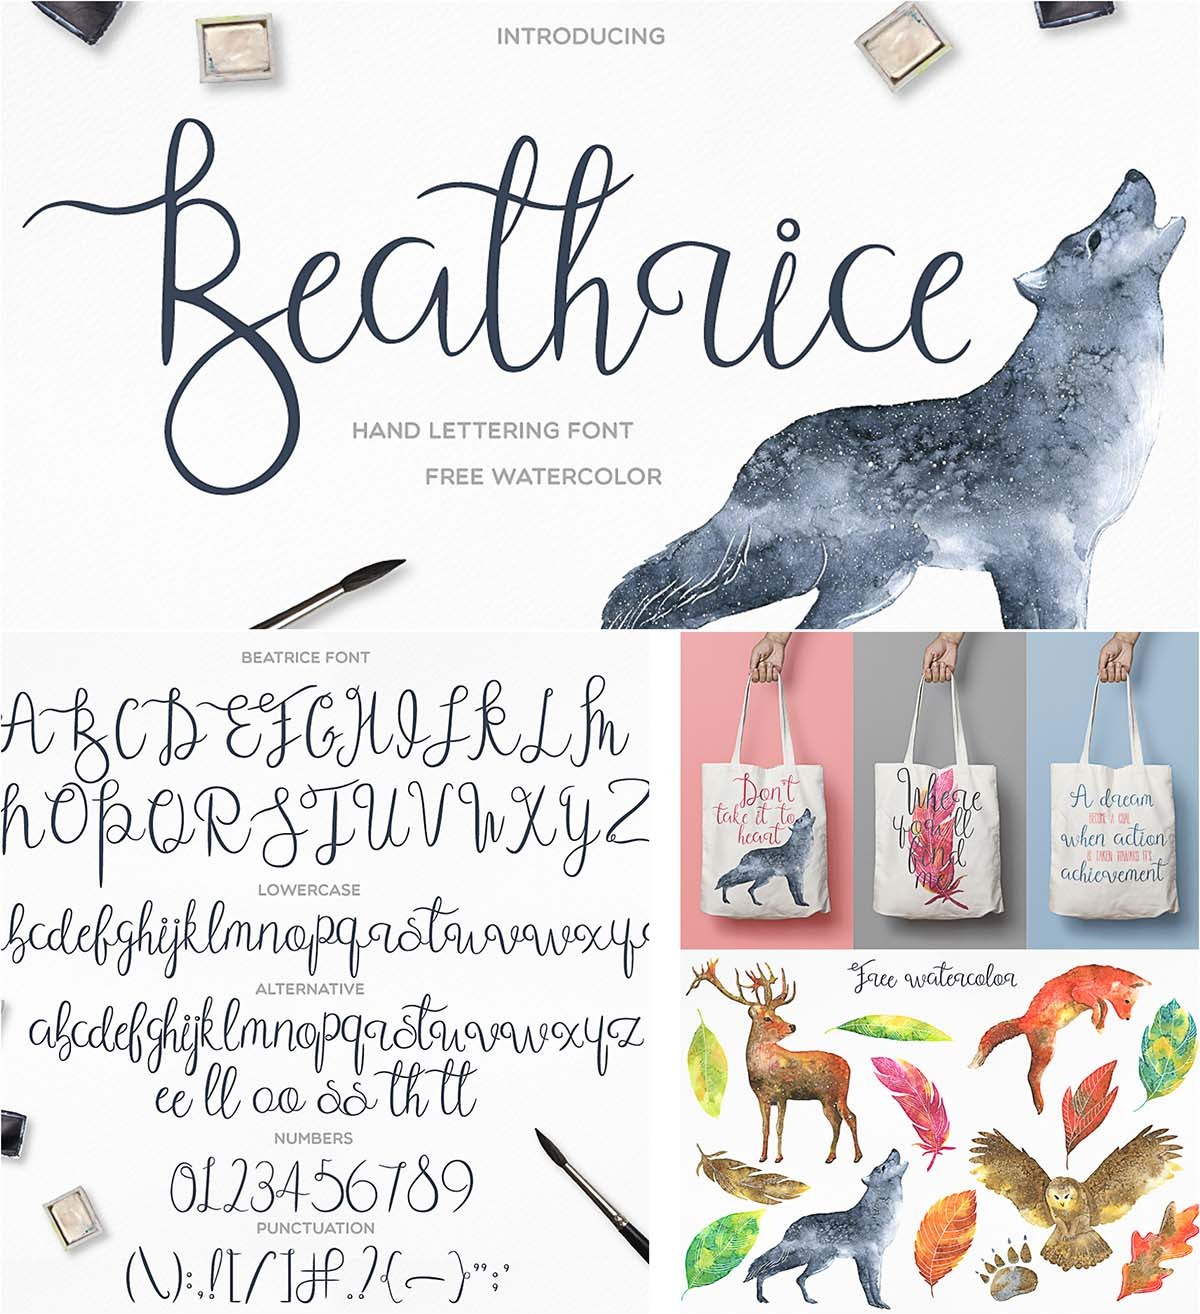 Beathrice font and watercolor elements